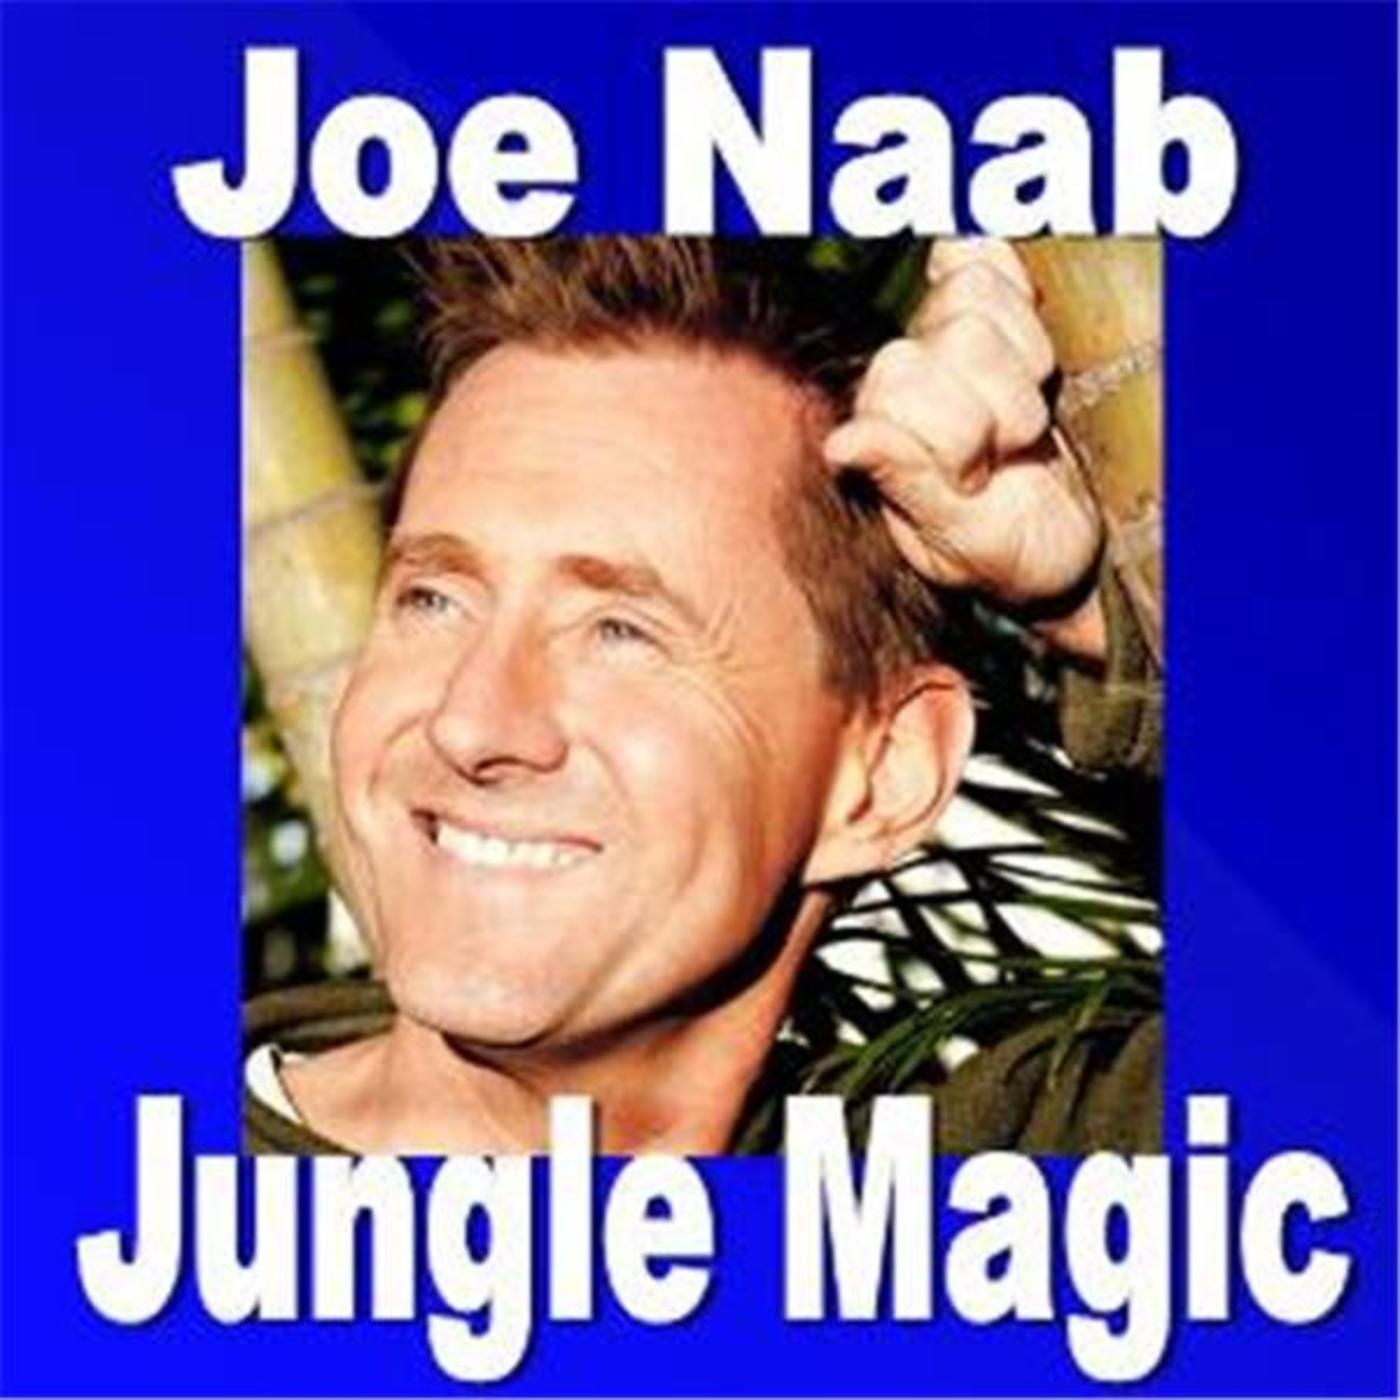 Jungle Magic with Joe Naab